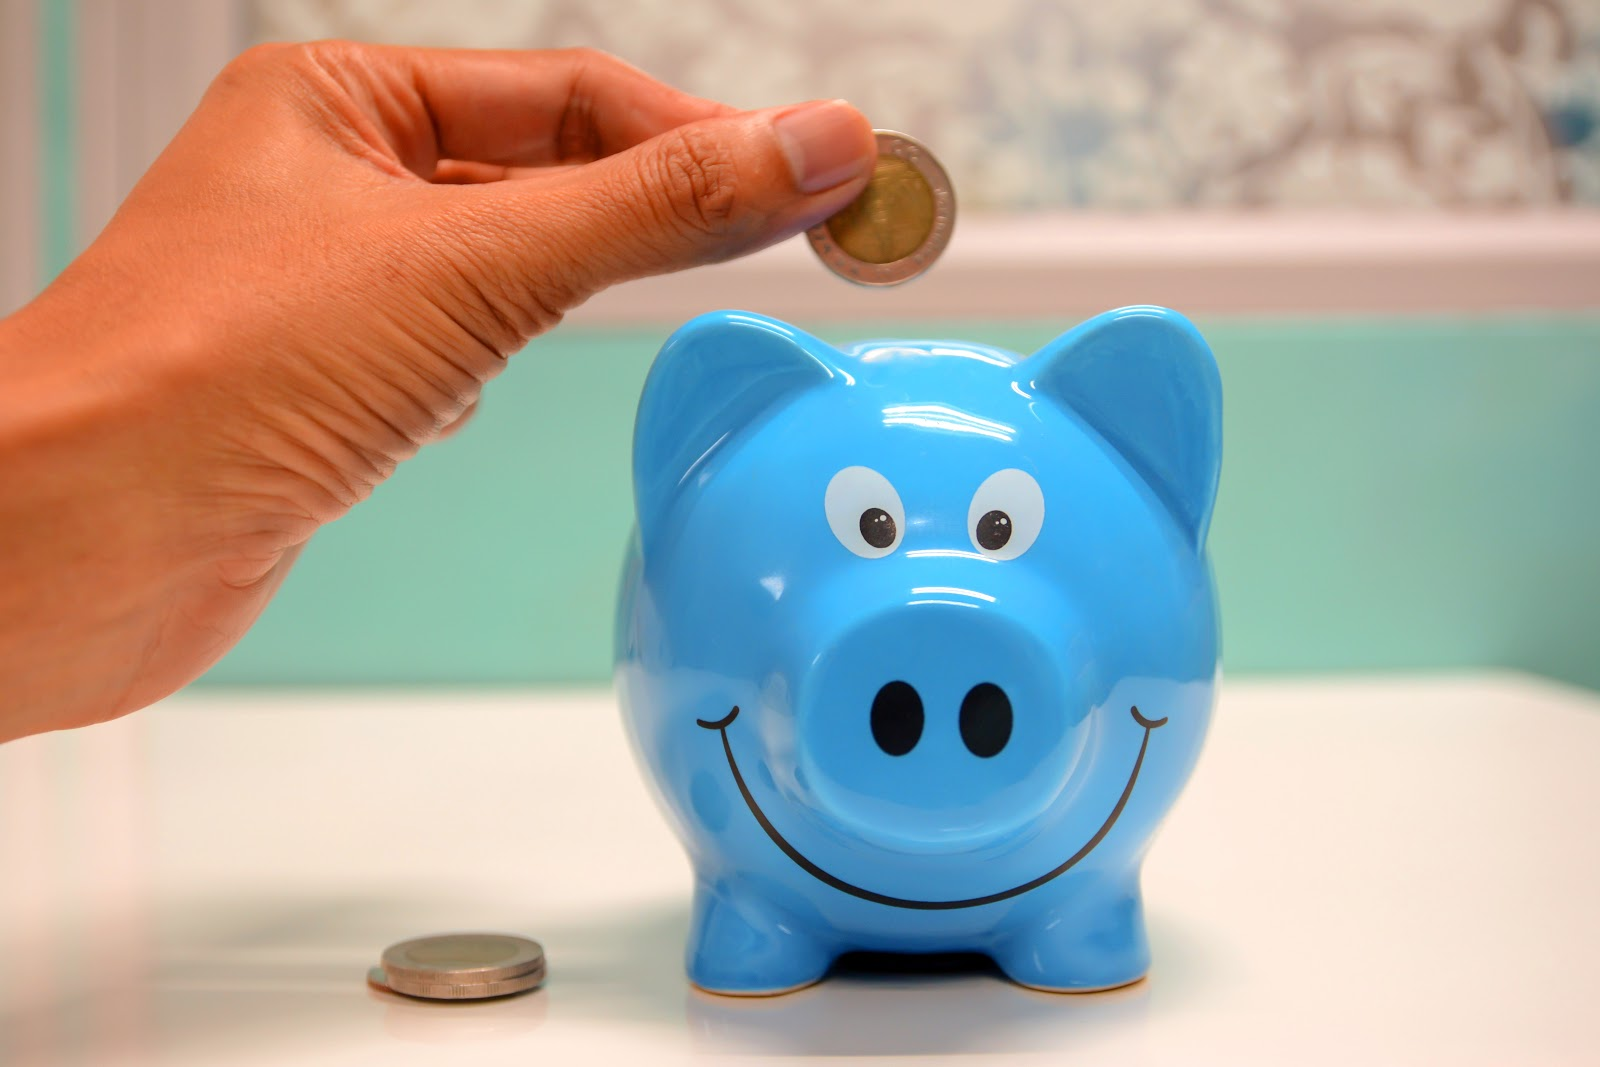 Top 8 Money-Saving Tips Everyone Can Use